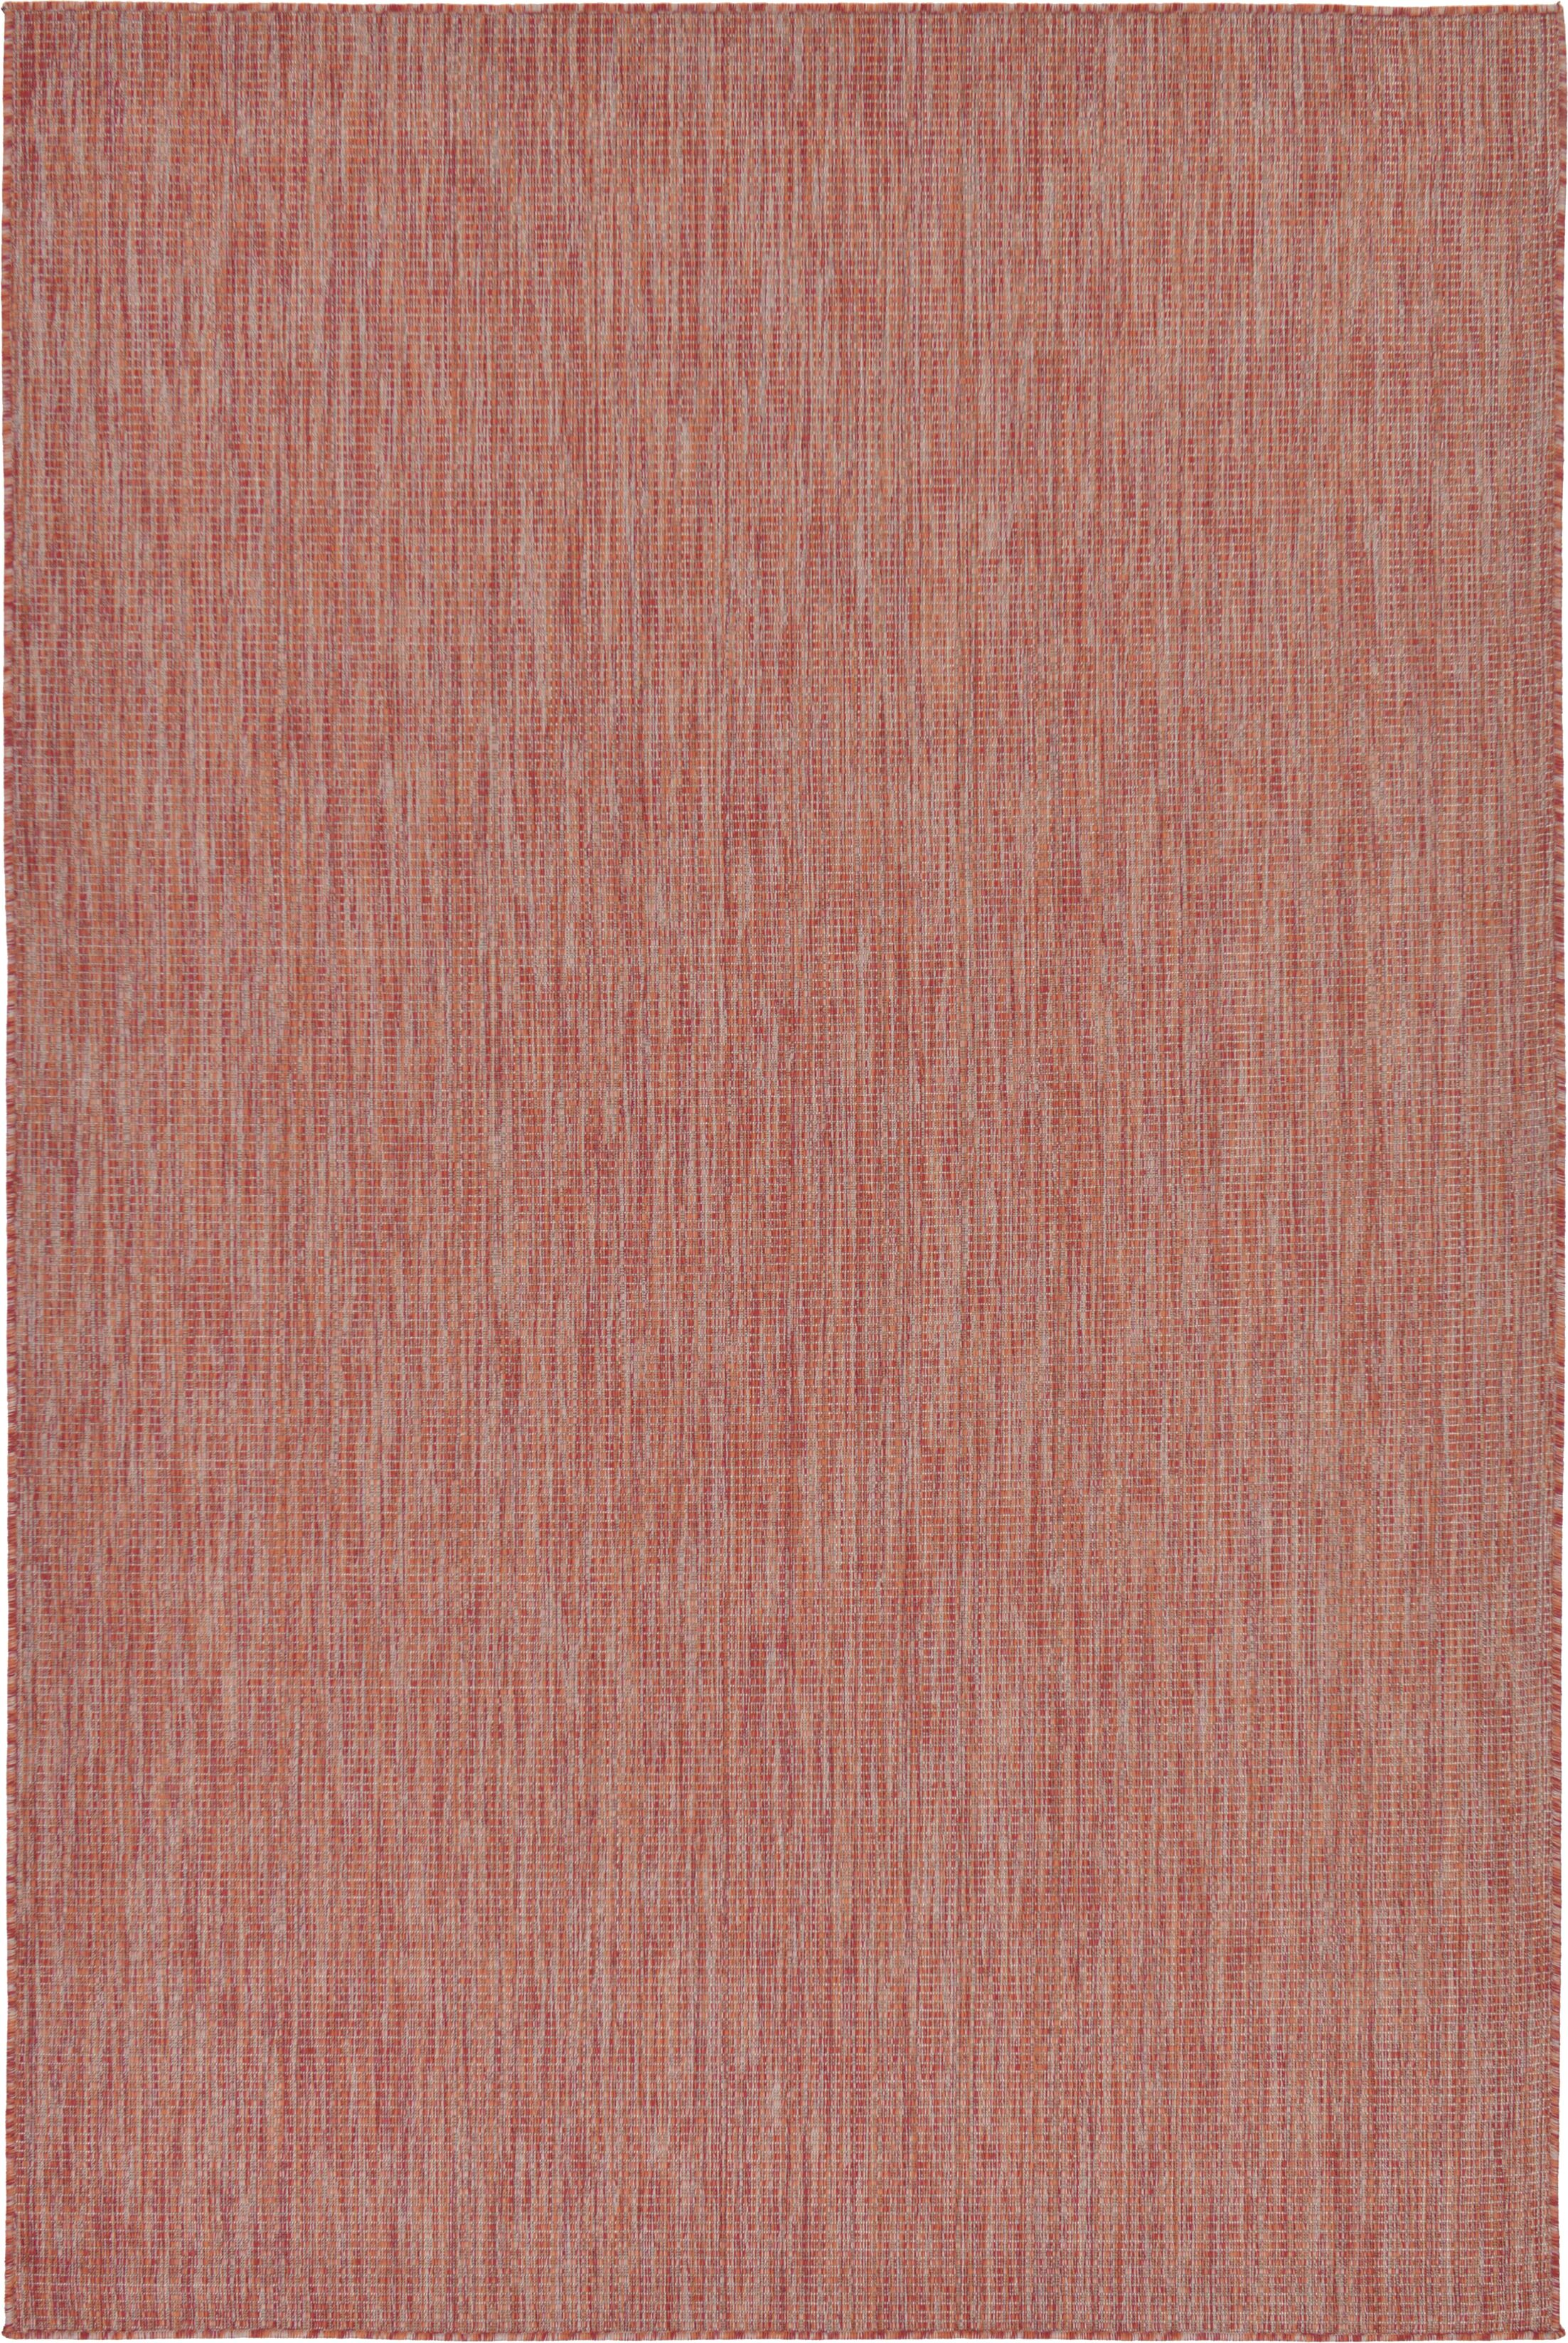 Janet Rust Red Area Rug Rug Size: Rectangle 6' x 9'